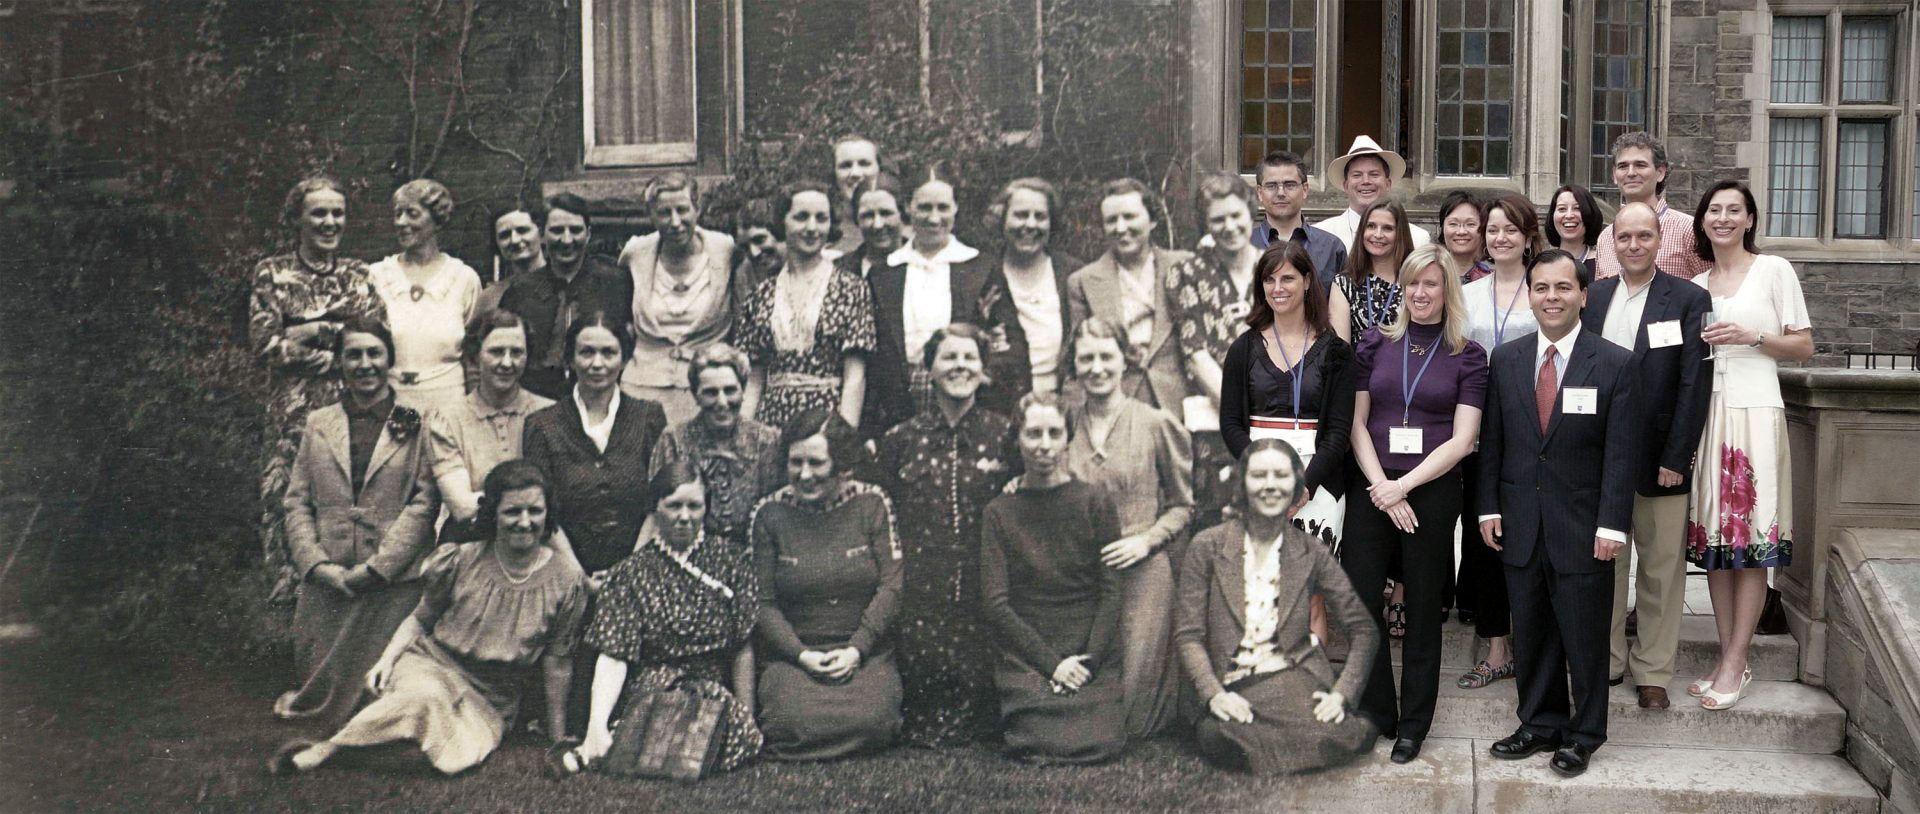 Graduates posed at Reunion 1930 and 2009